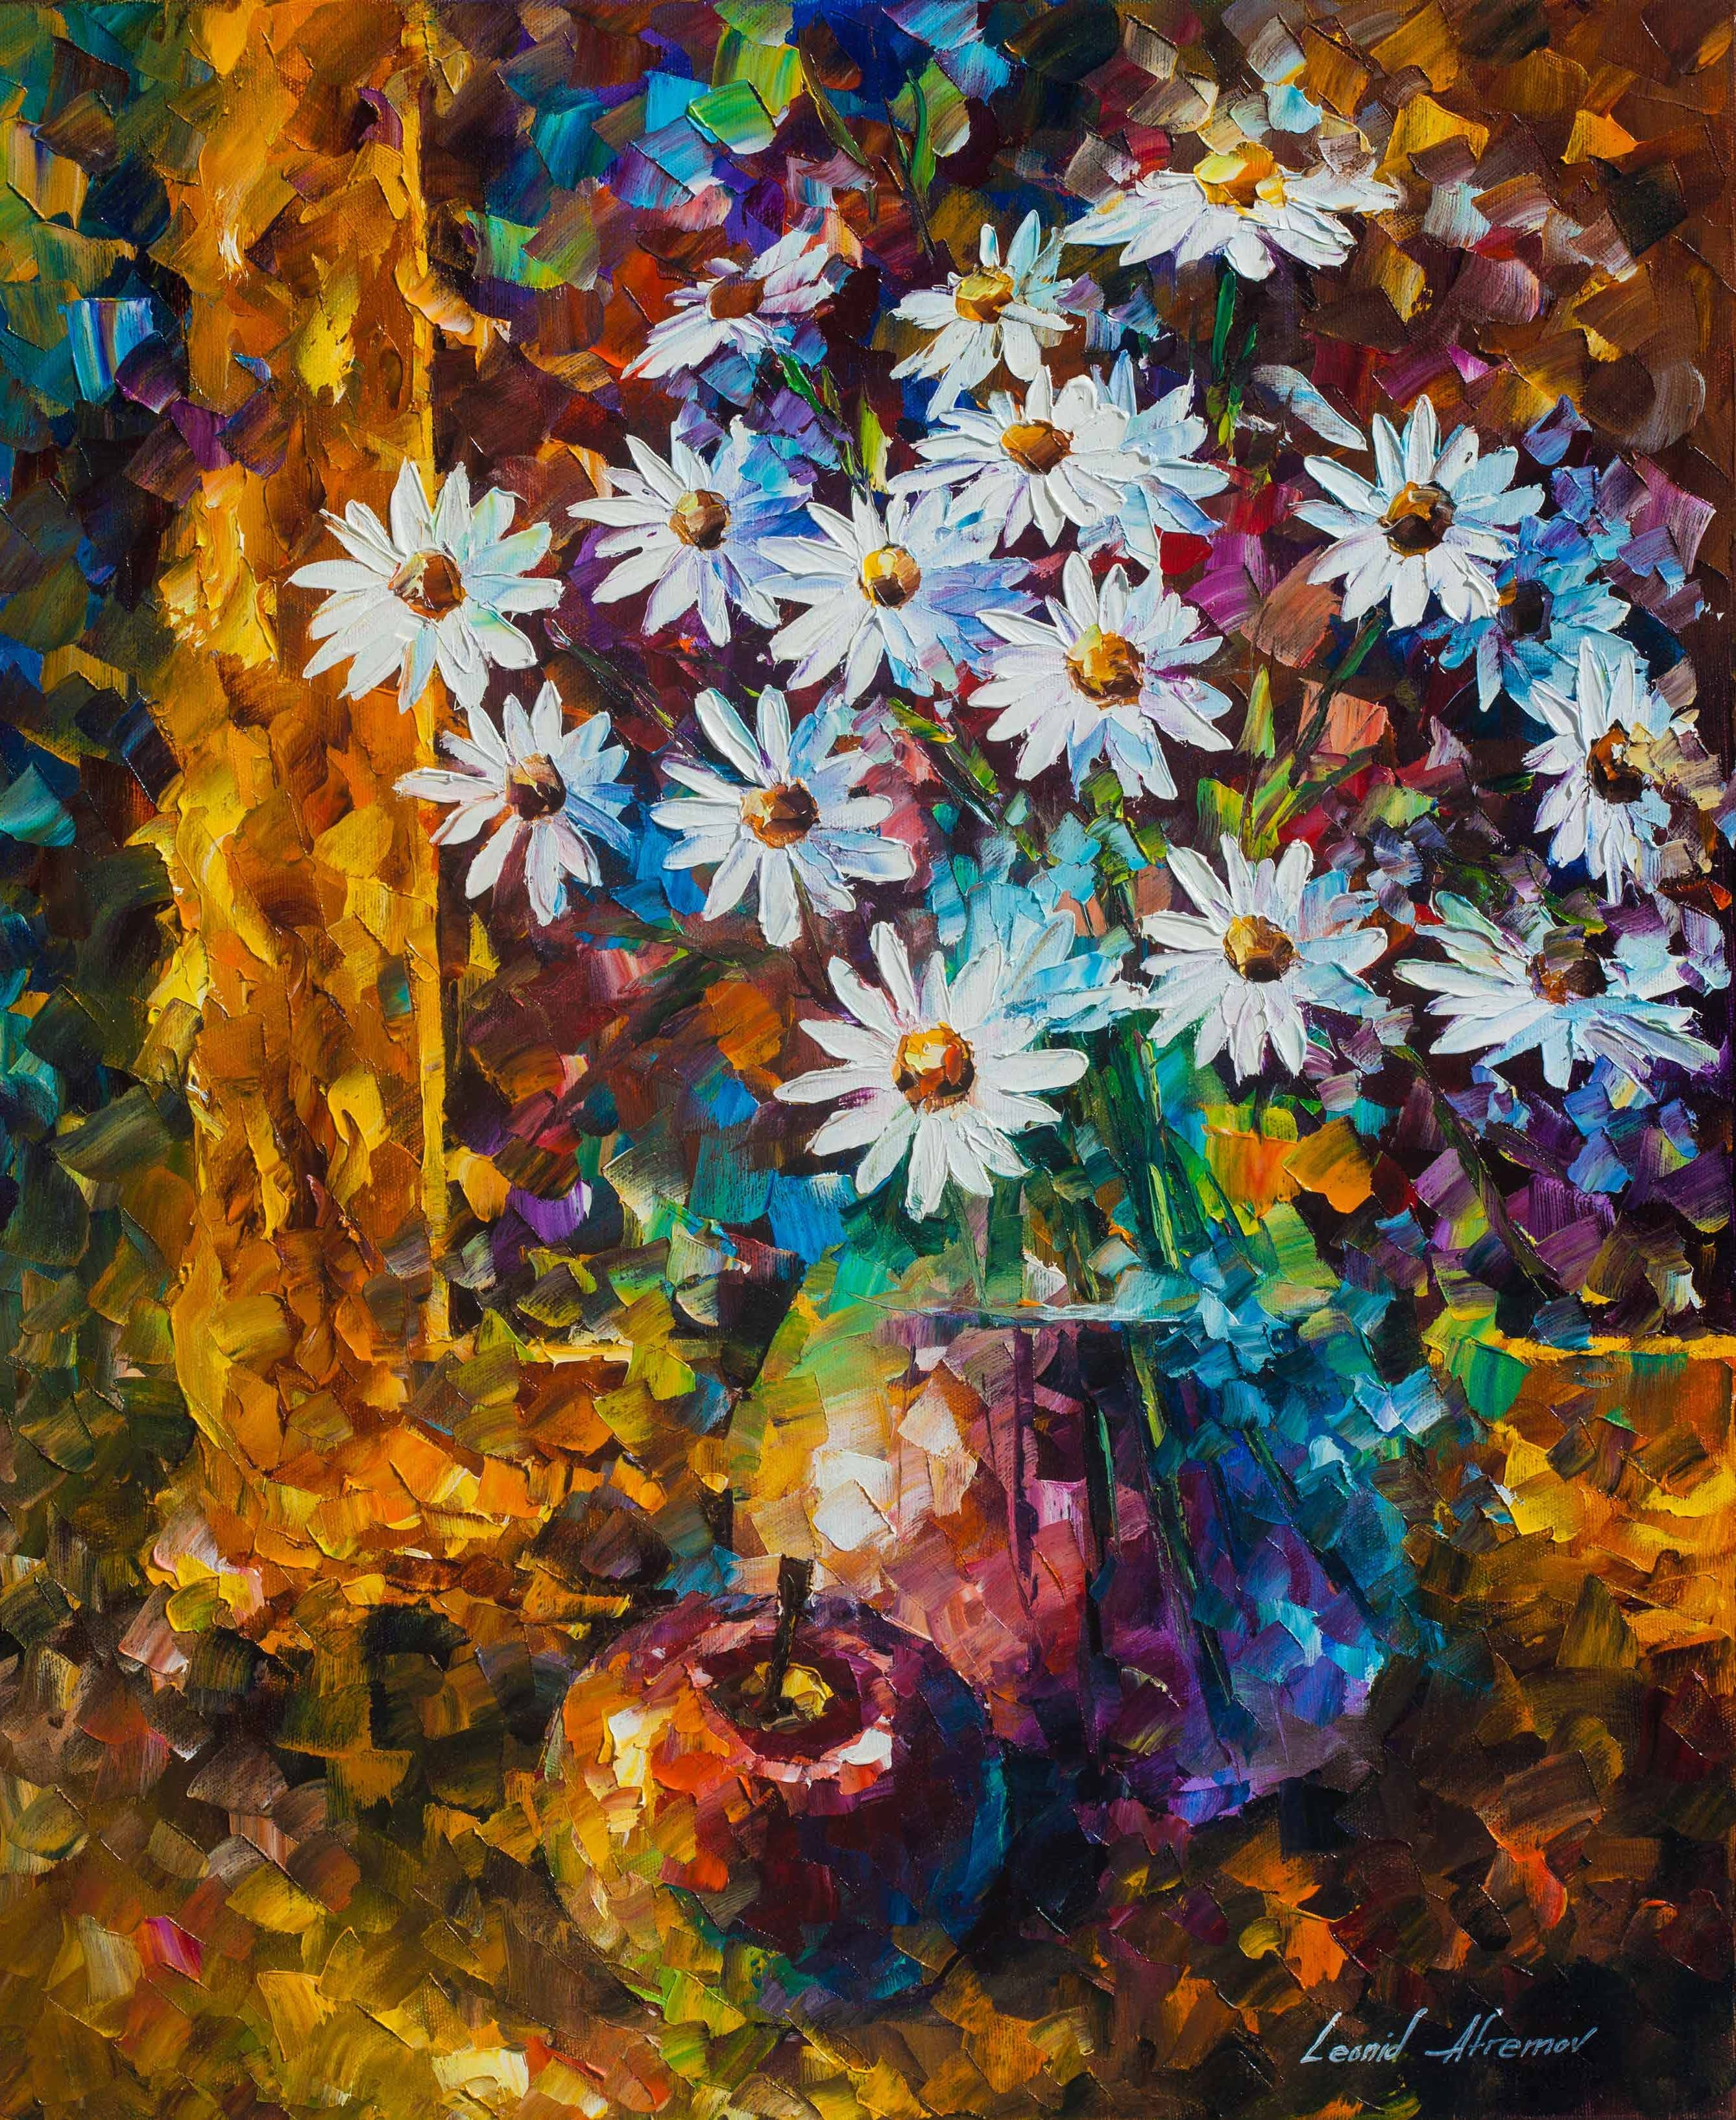 White Flowers - Palette Knife Oil Painting - Wall Art Canvas within Wall Art Paintings (Image 18 of 20)